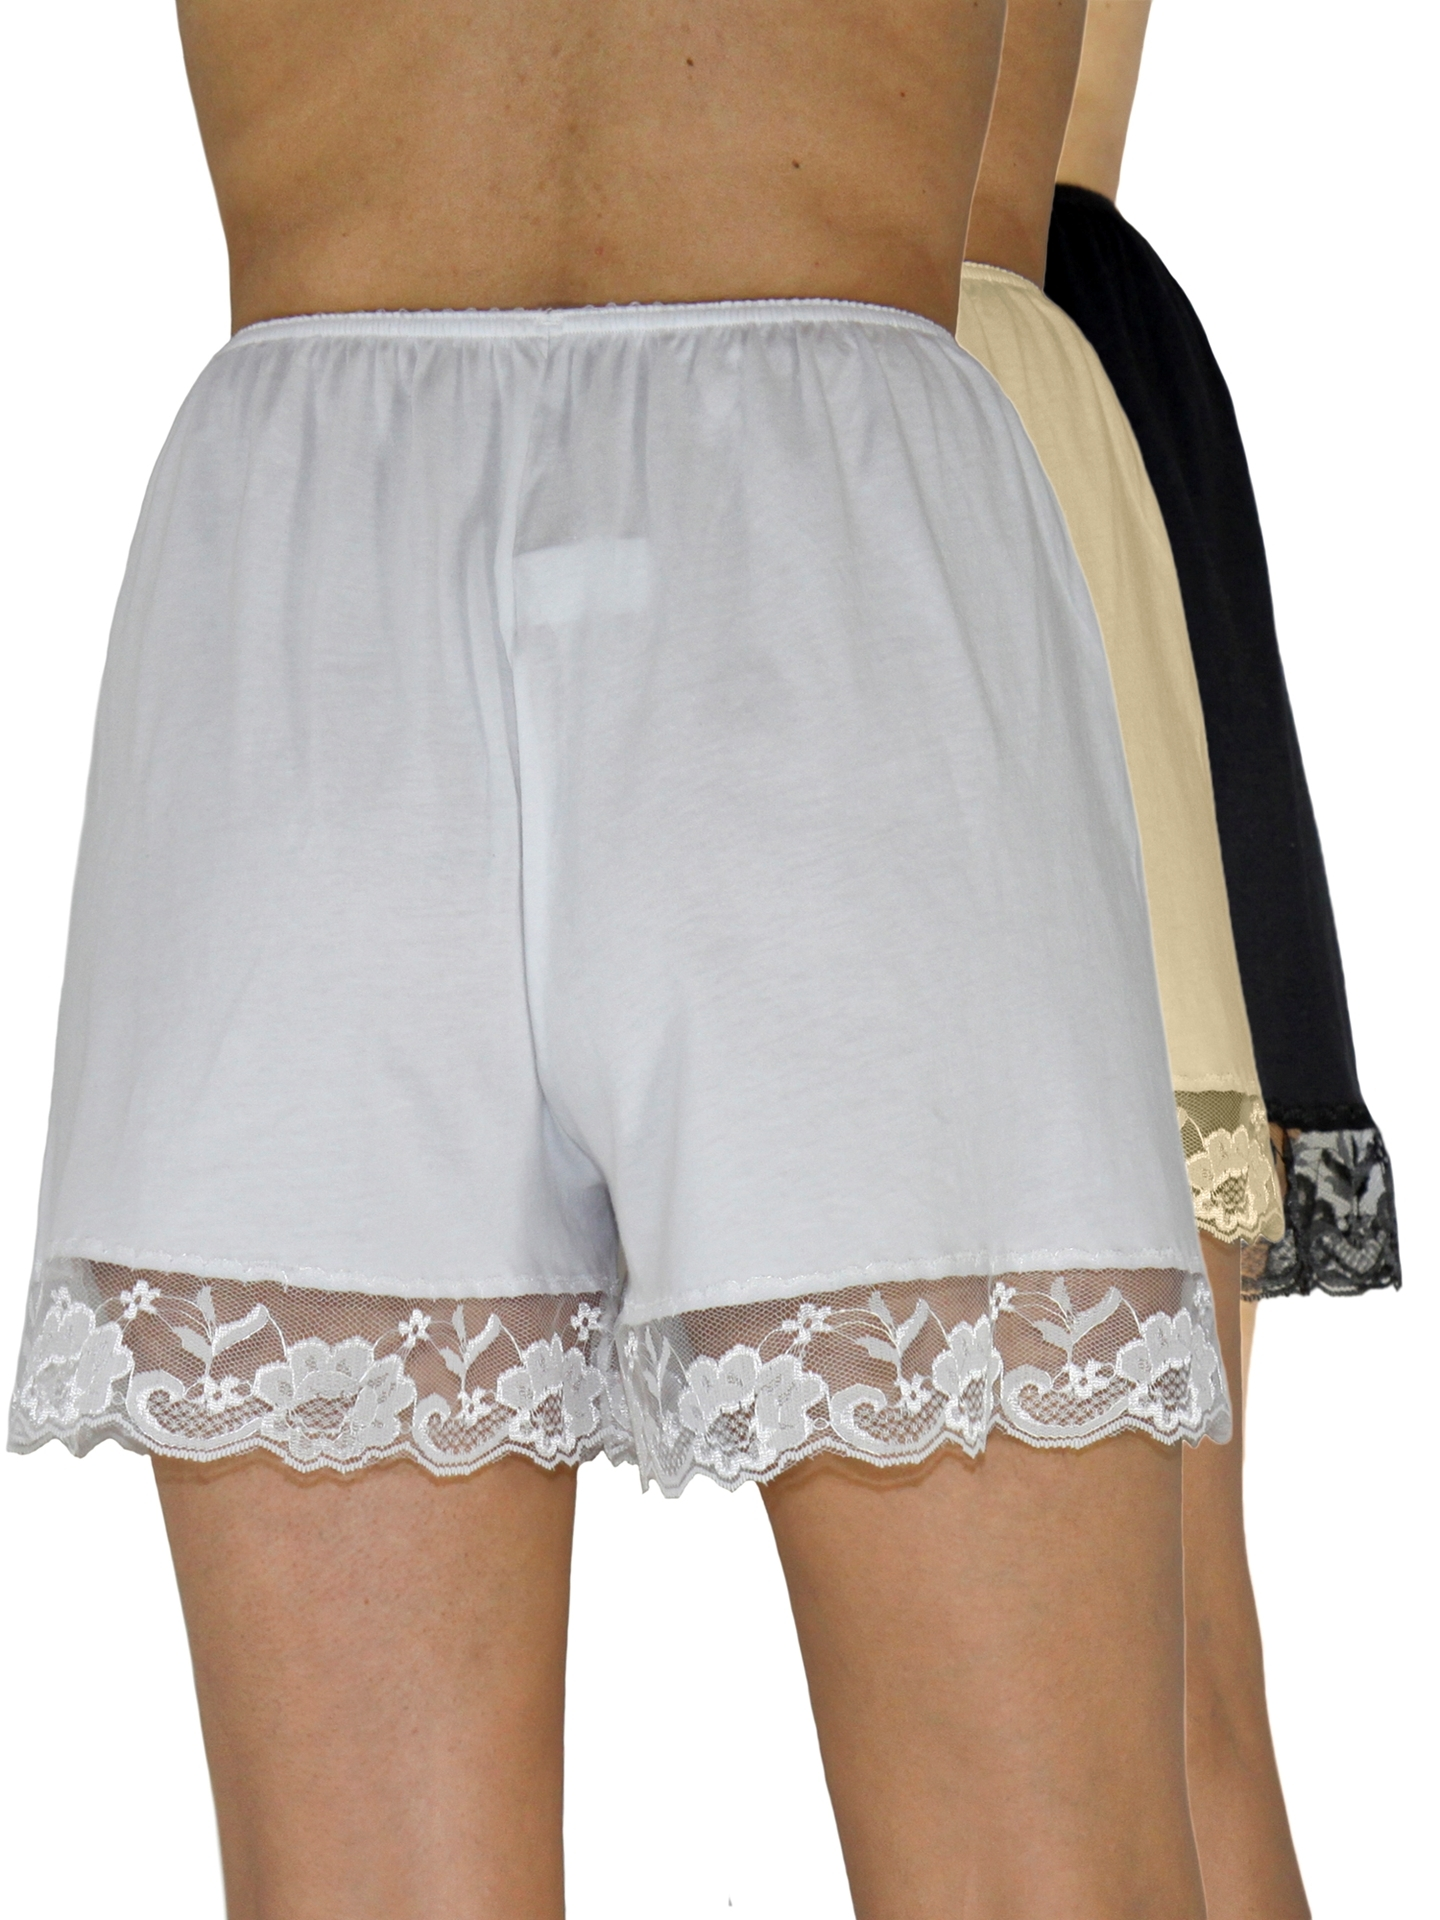 Picture of Pettipants Cotton Knit Culotte Slip Bloomers Split Skirt 4-inch Inseam 3-Pack